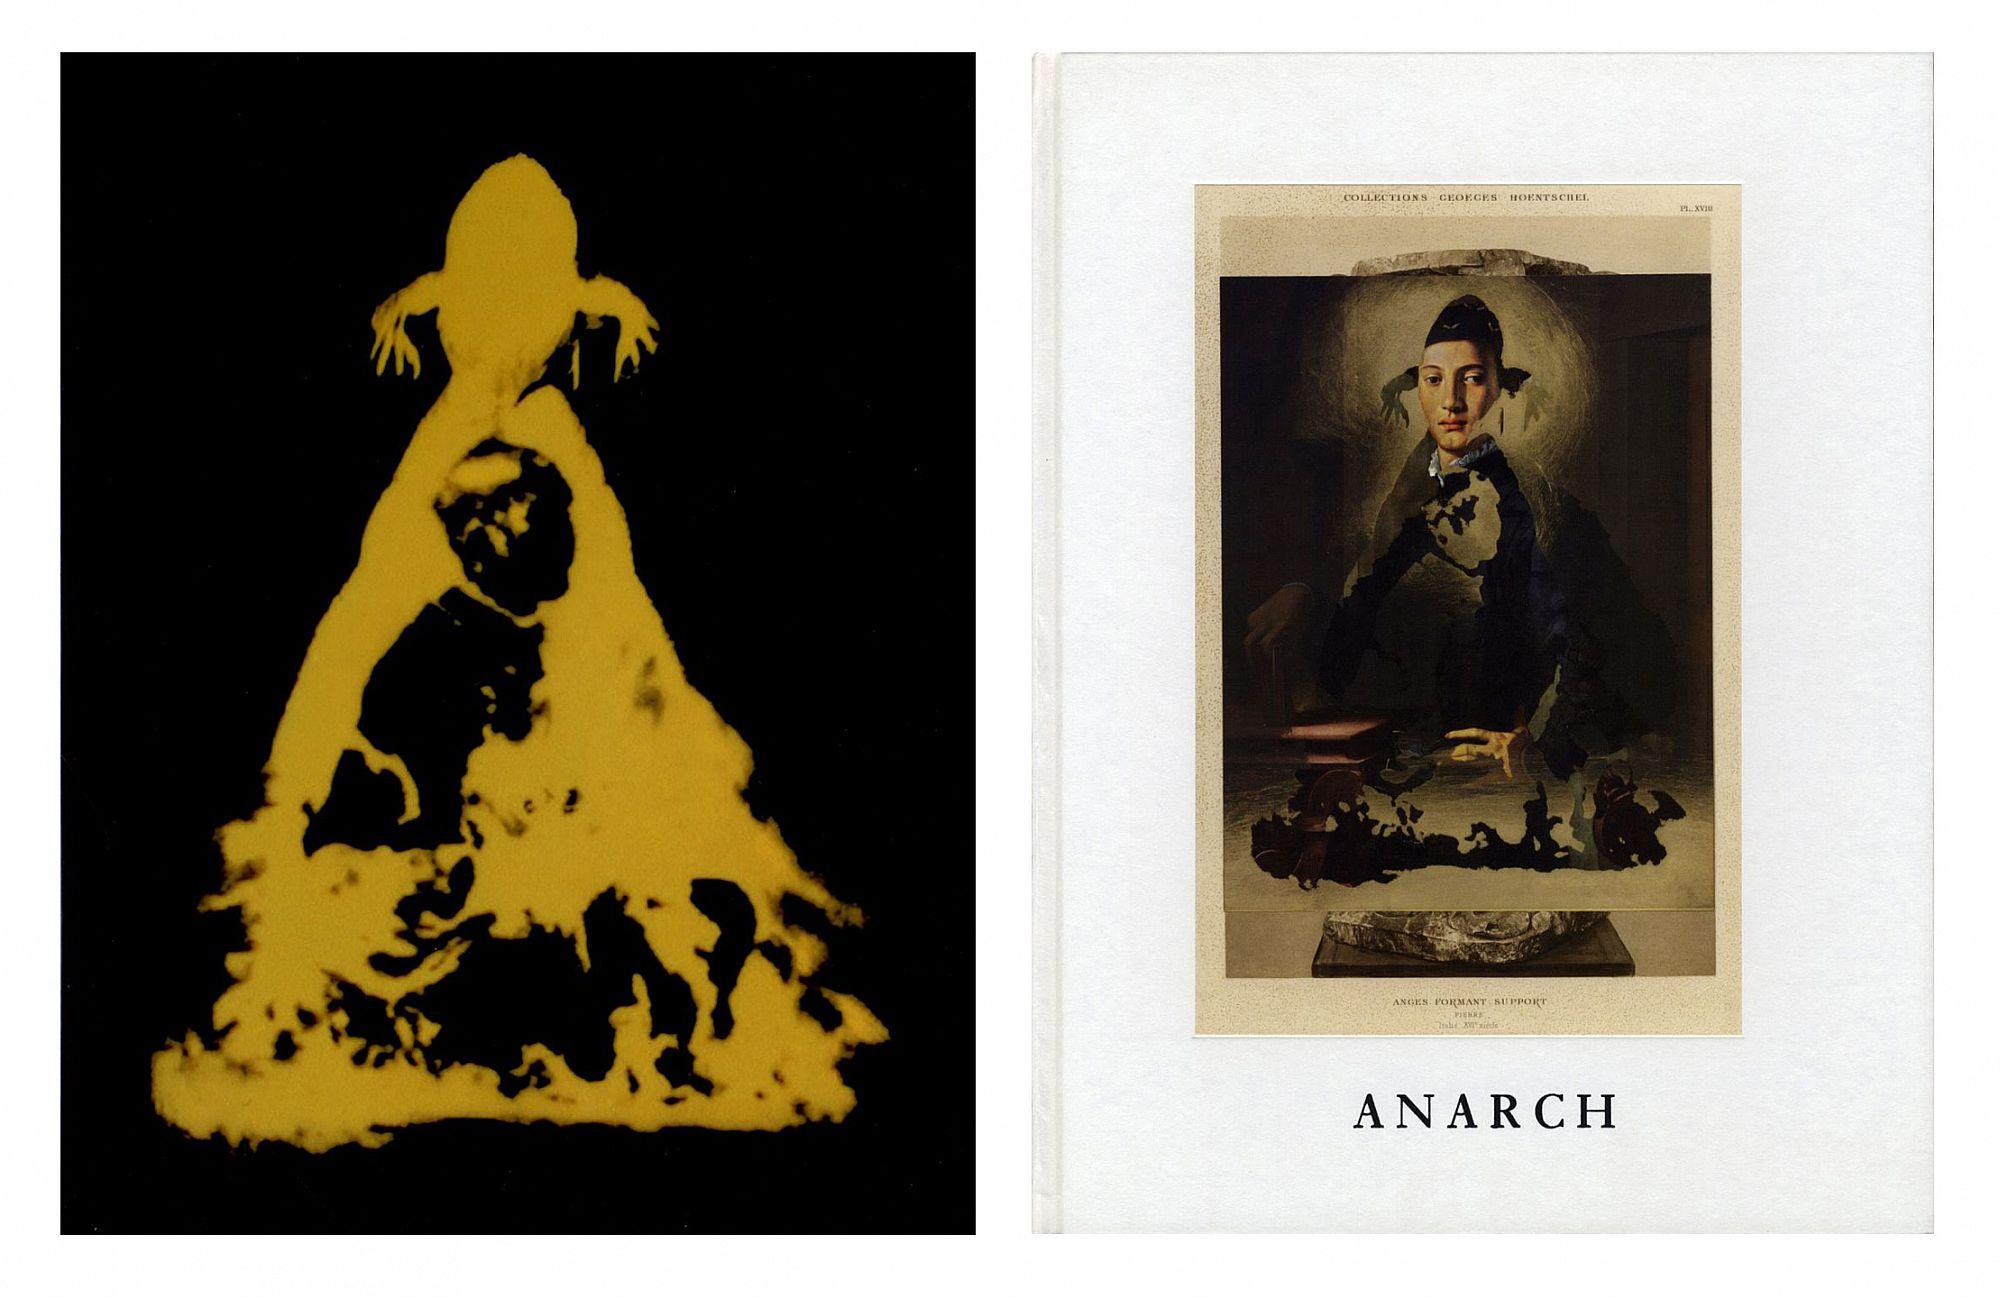 Joseph Mills: Anarch, Limited Edition (with Print)